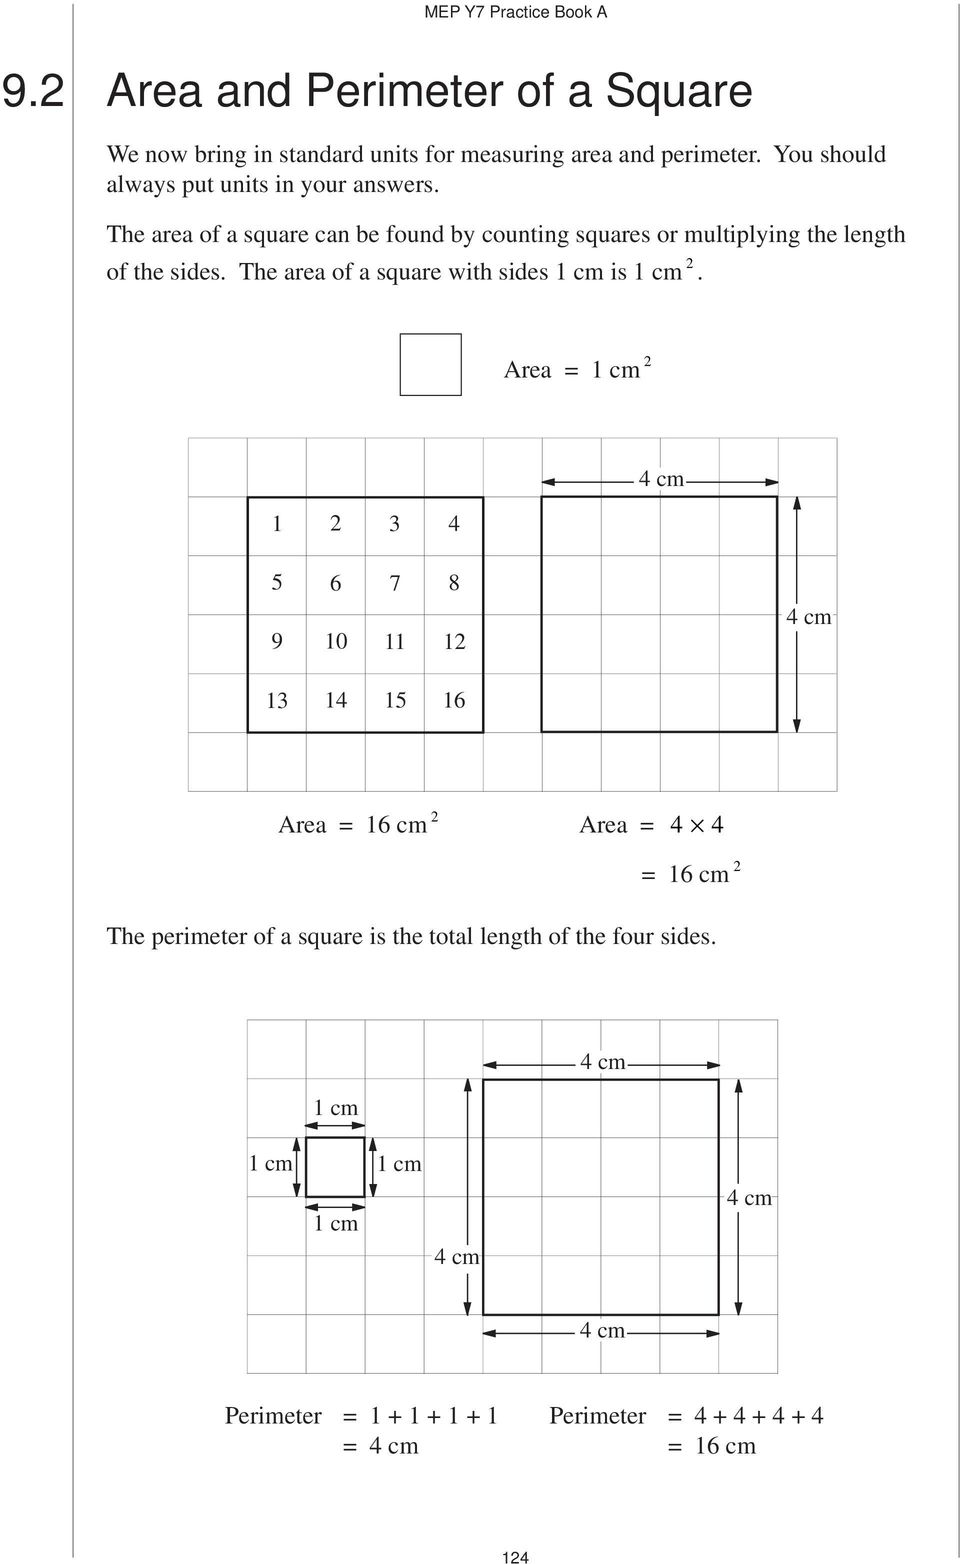 The area of a square can be found by counting squares or multiplying the length of the sides.